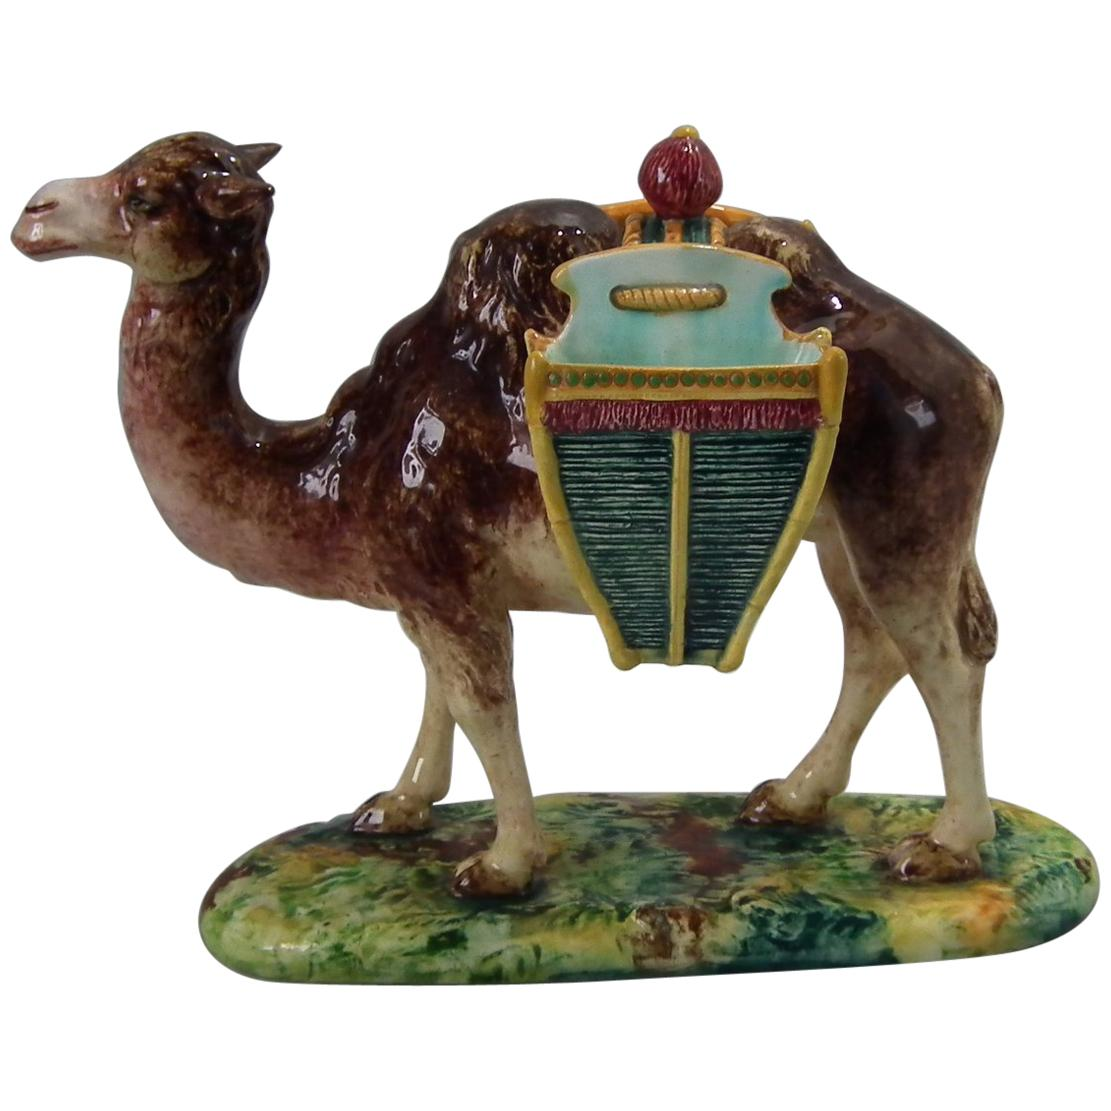 Jerome Massier Majolica Camel with Baskets Figure